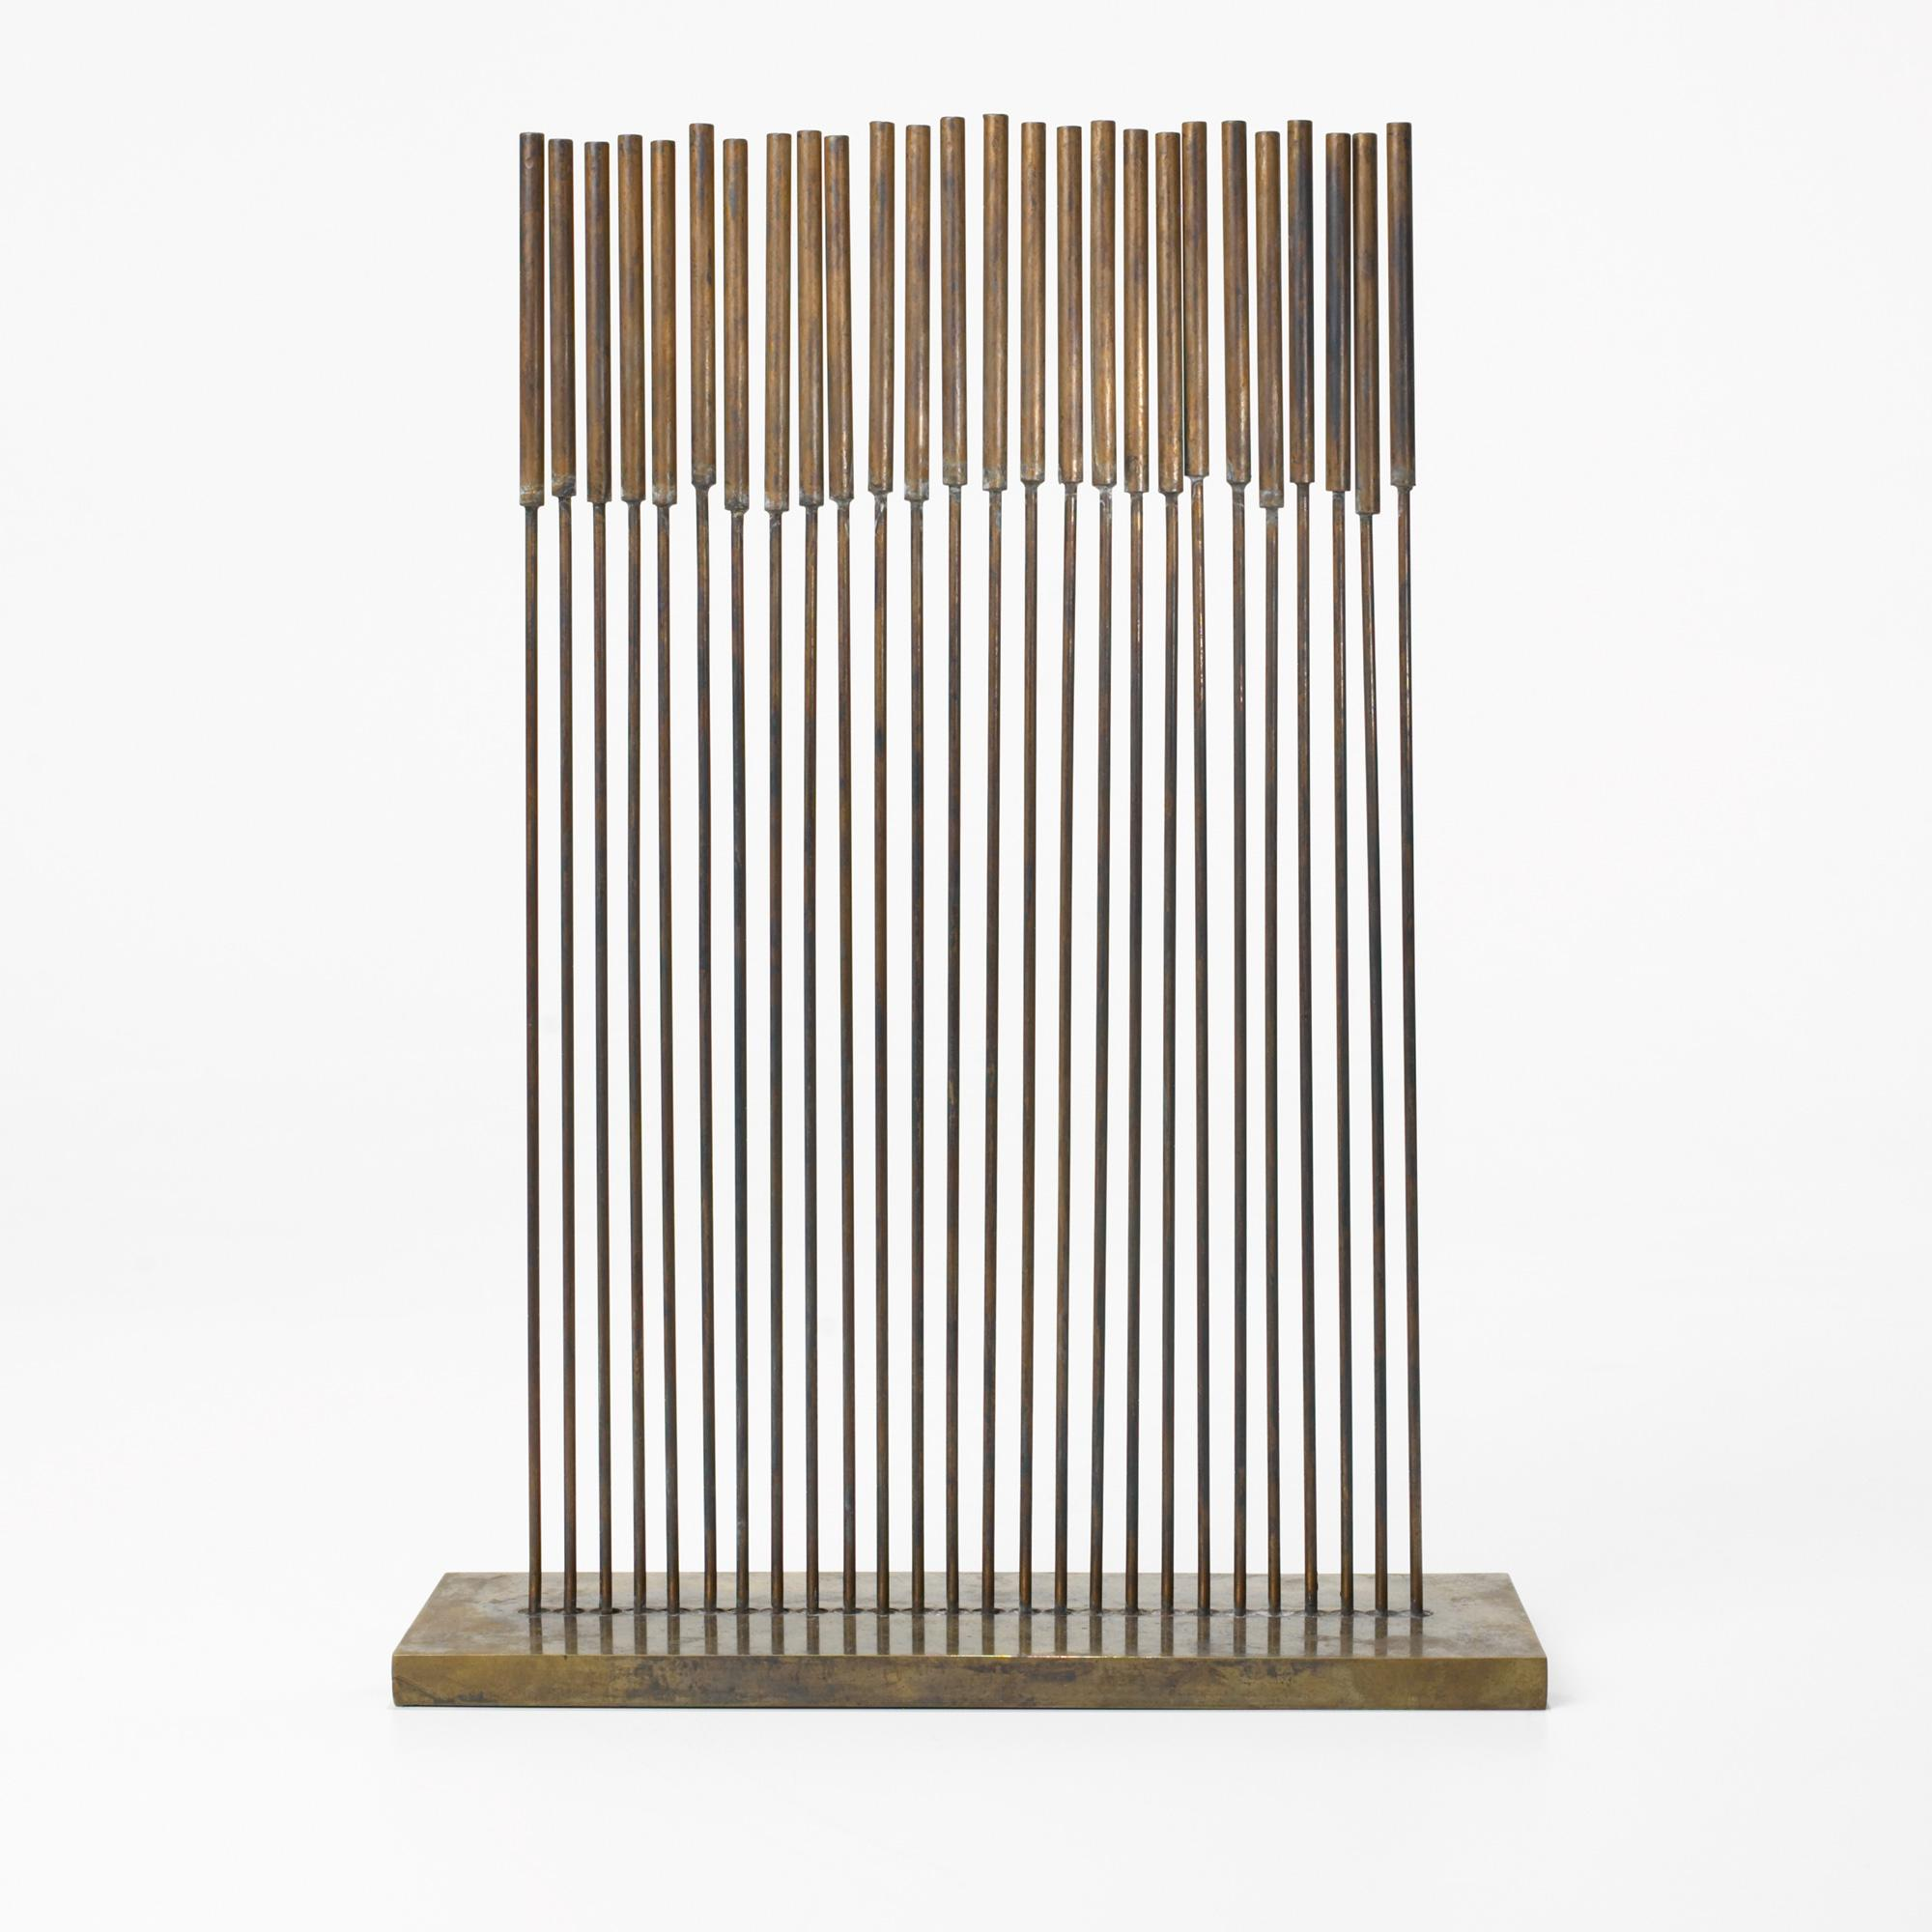 Harry Bertoia Sound Vision Design & Desire in the Twentieth